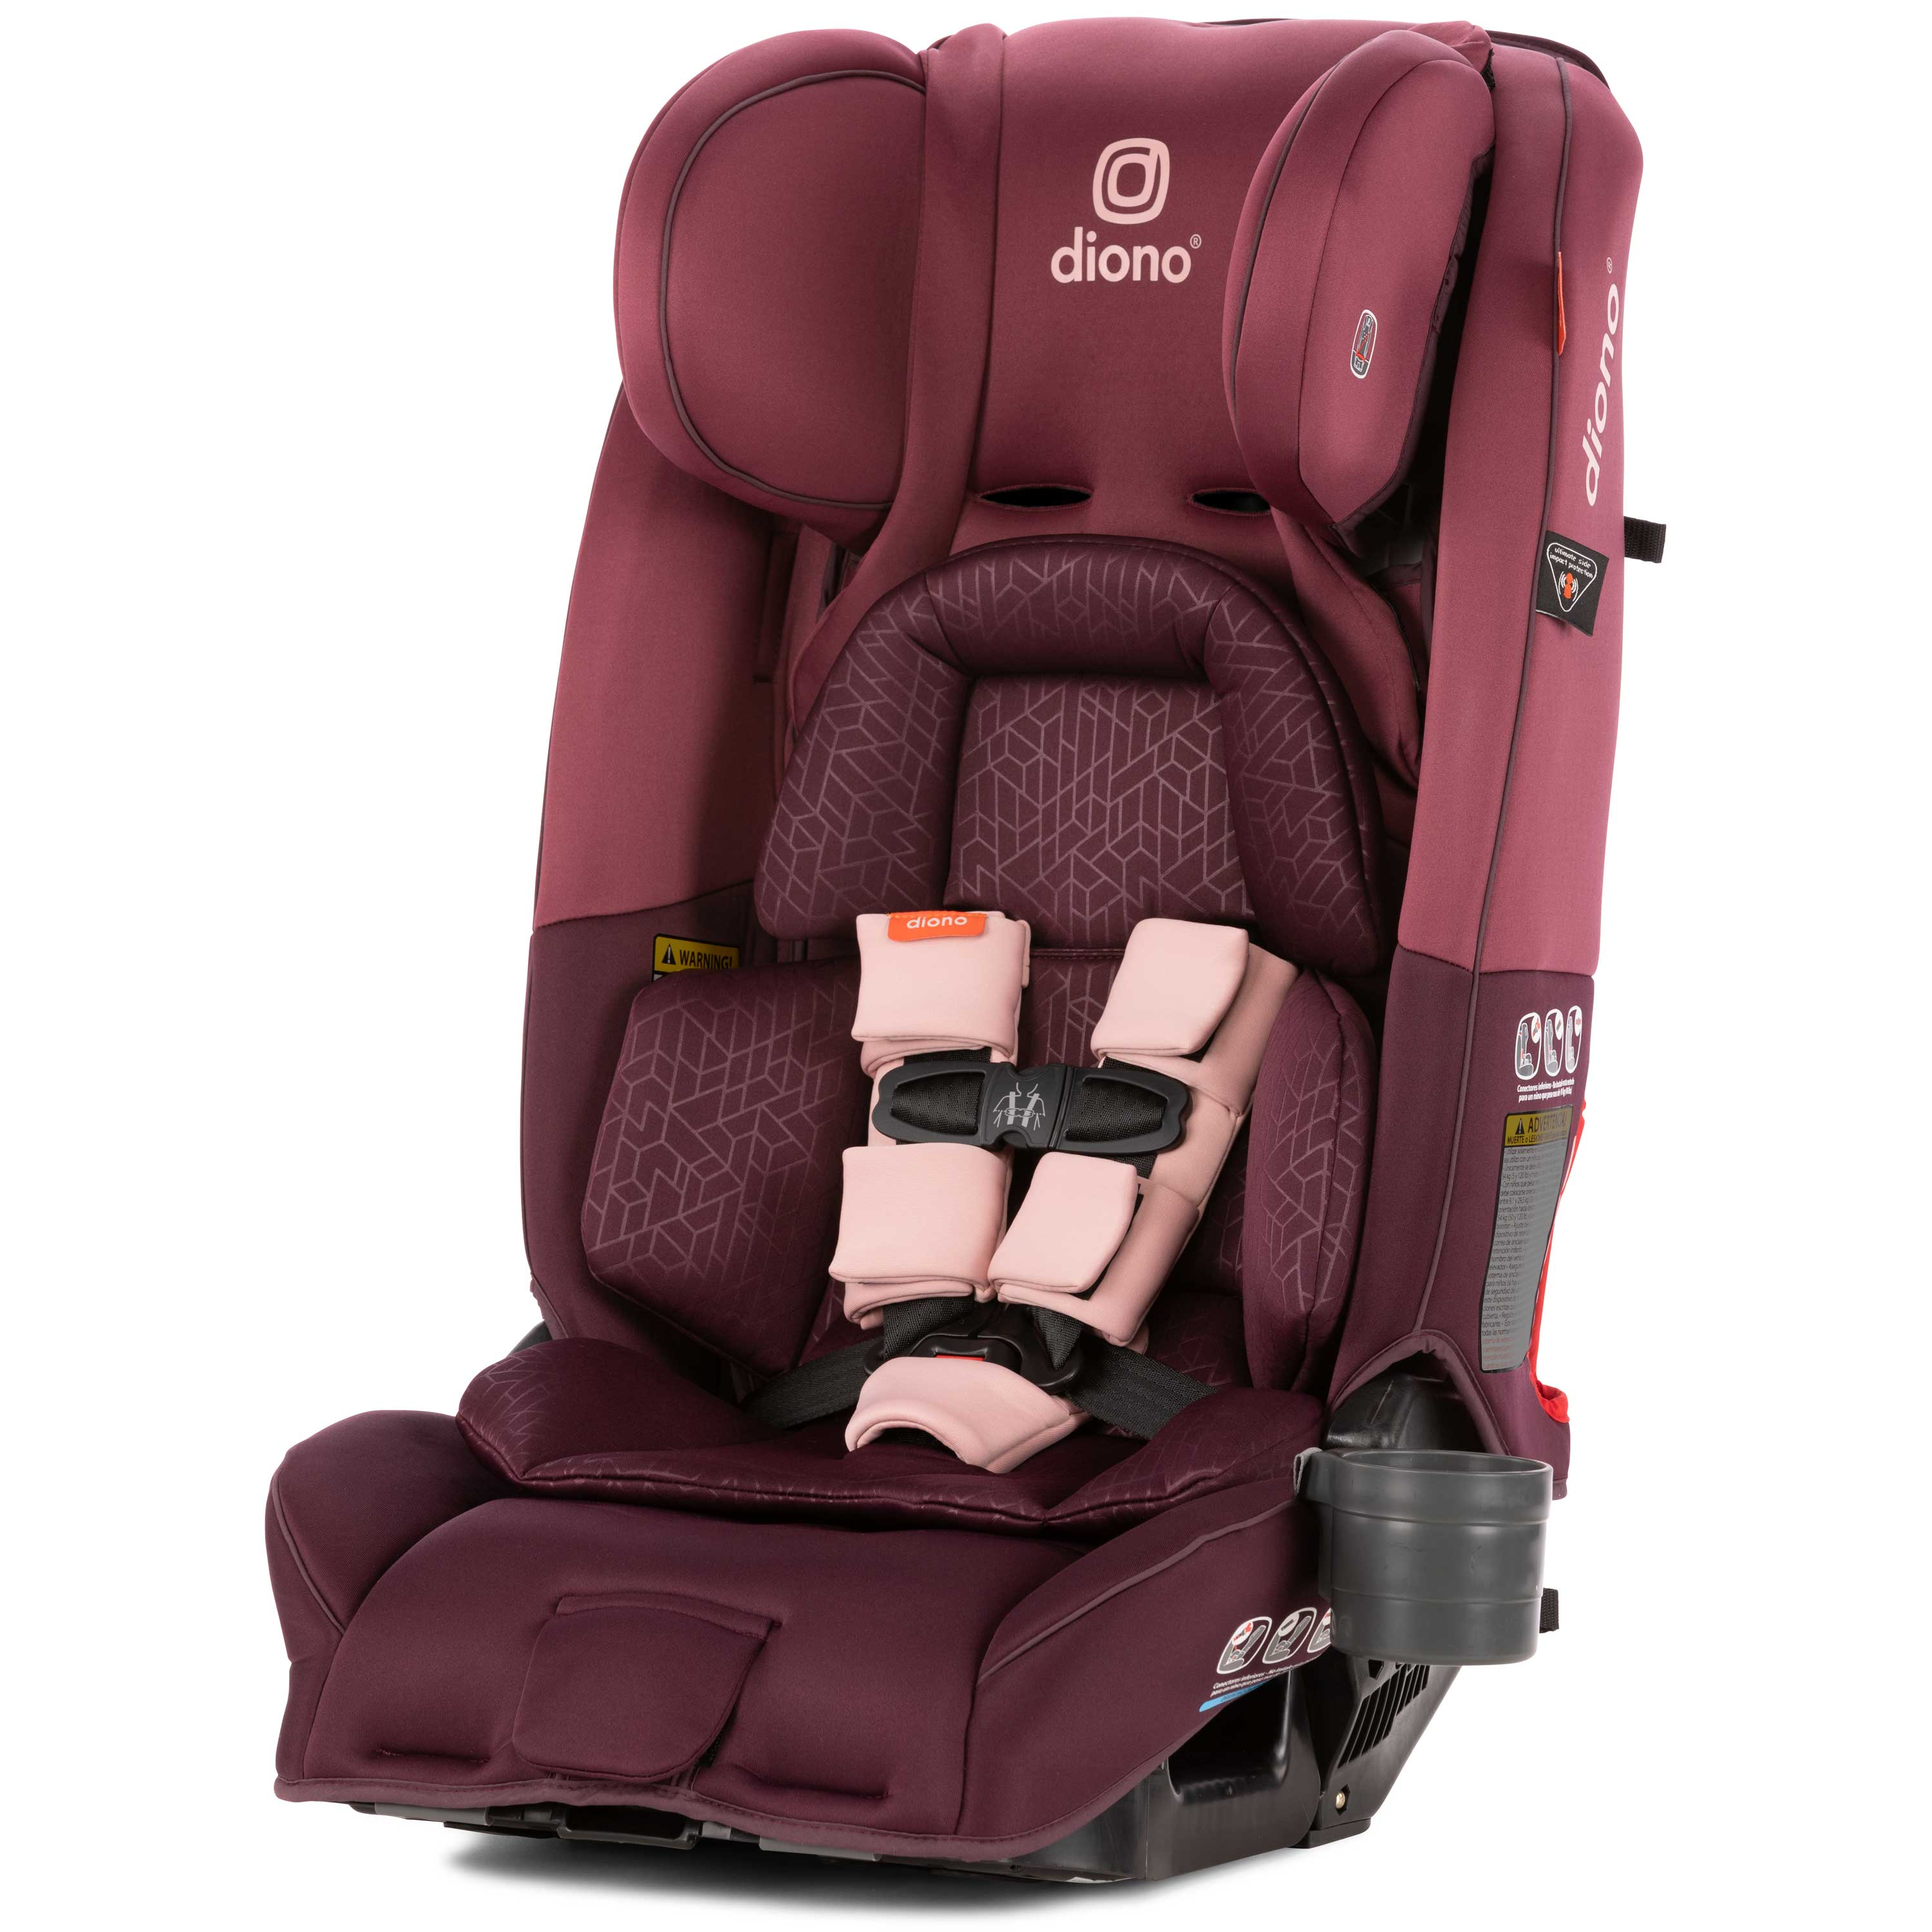 Diono Radian 3 RXT All-in-One Convertible Car Seat - Extended Rear-facing 5-45 lbs., Forward-facing to 65 lbs., Booster to 120 lbs.; The Original 3 Across; Plum